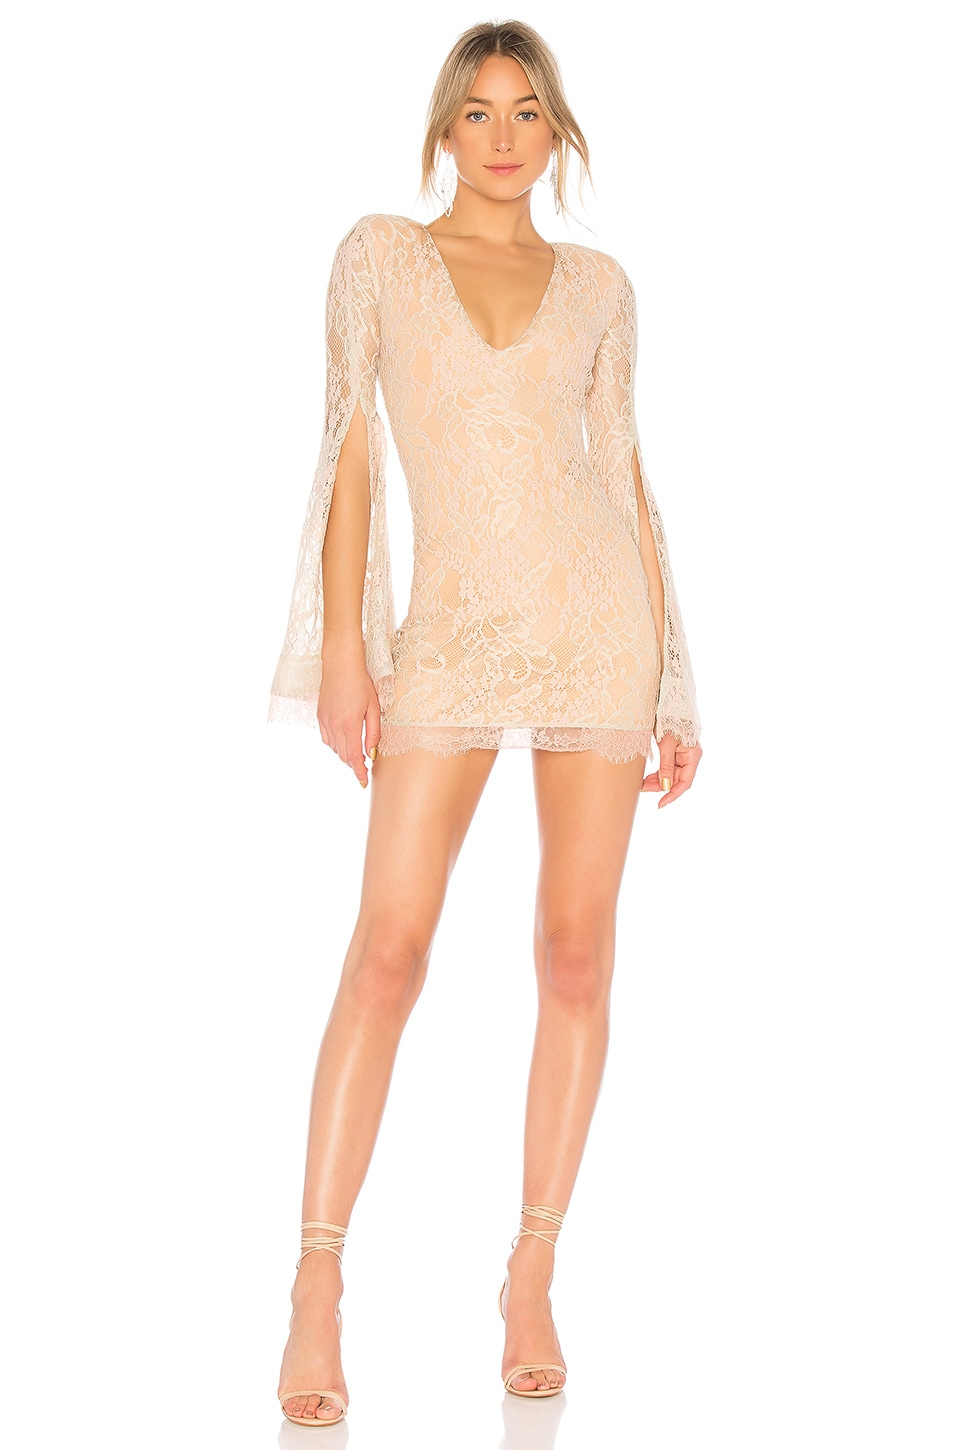 Michael Costello x REVOLVE Moseley Dress in Nude Bloom